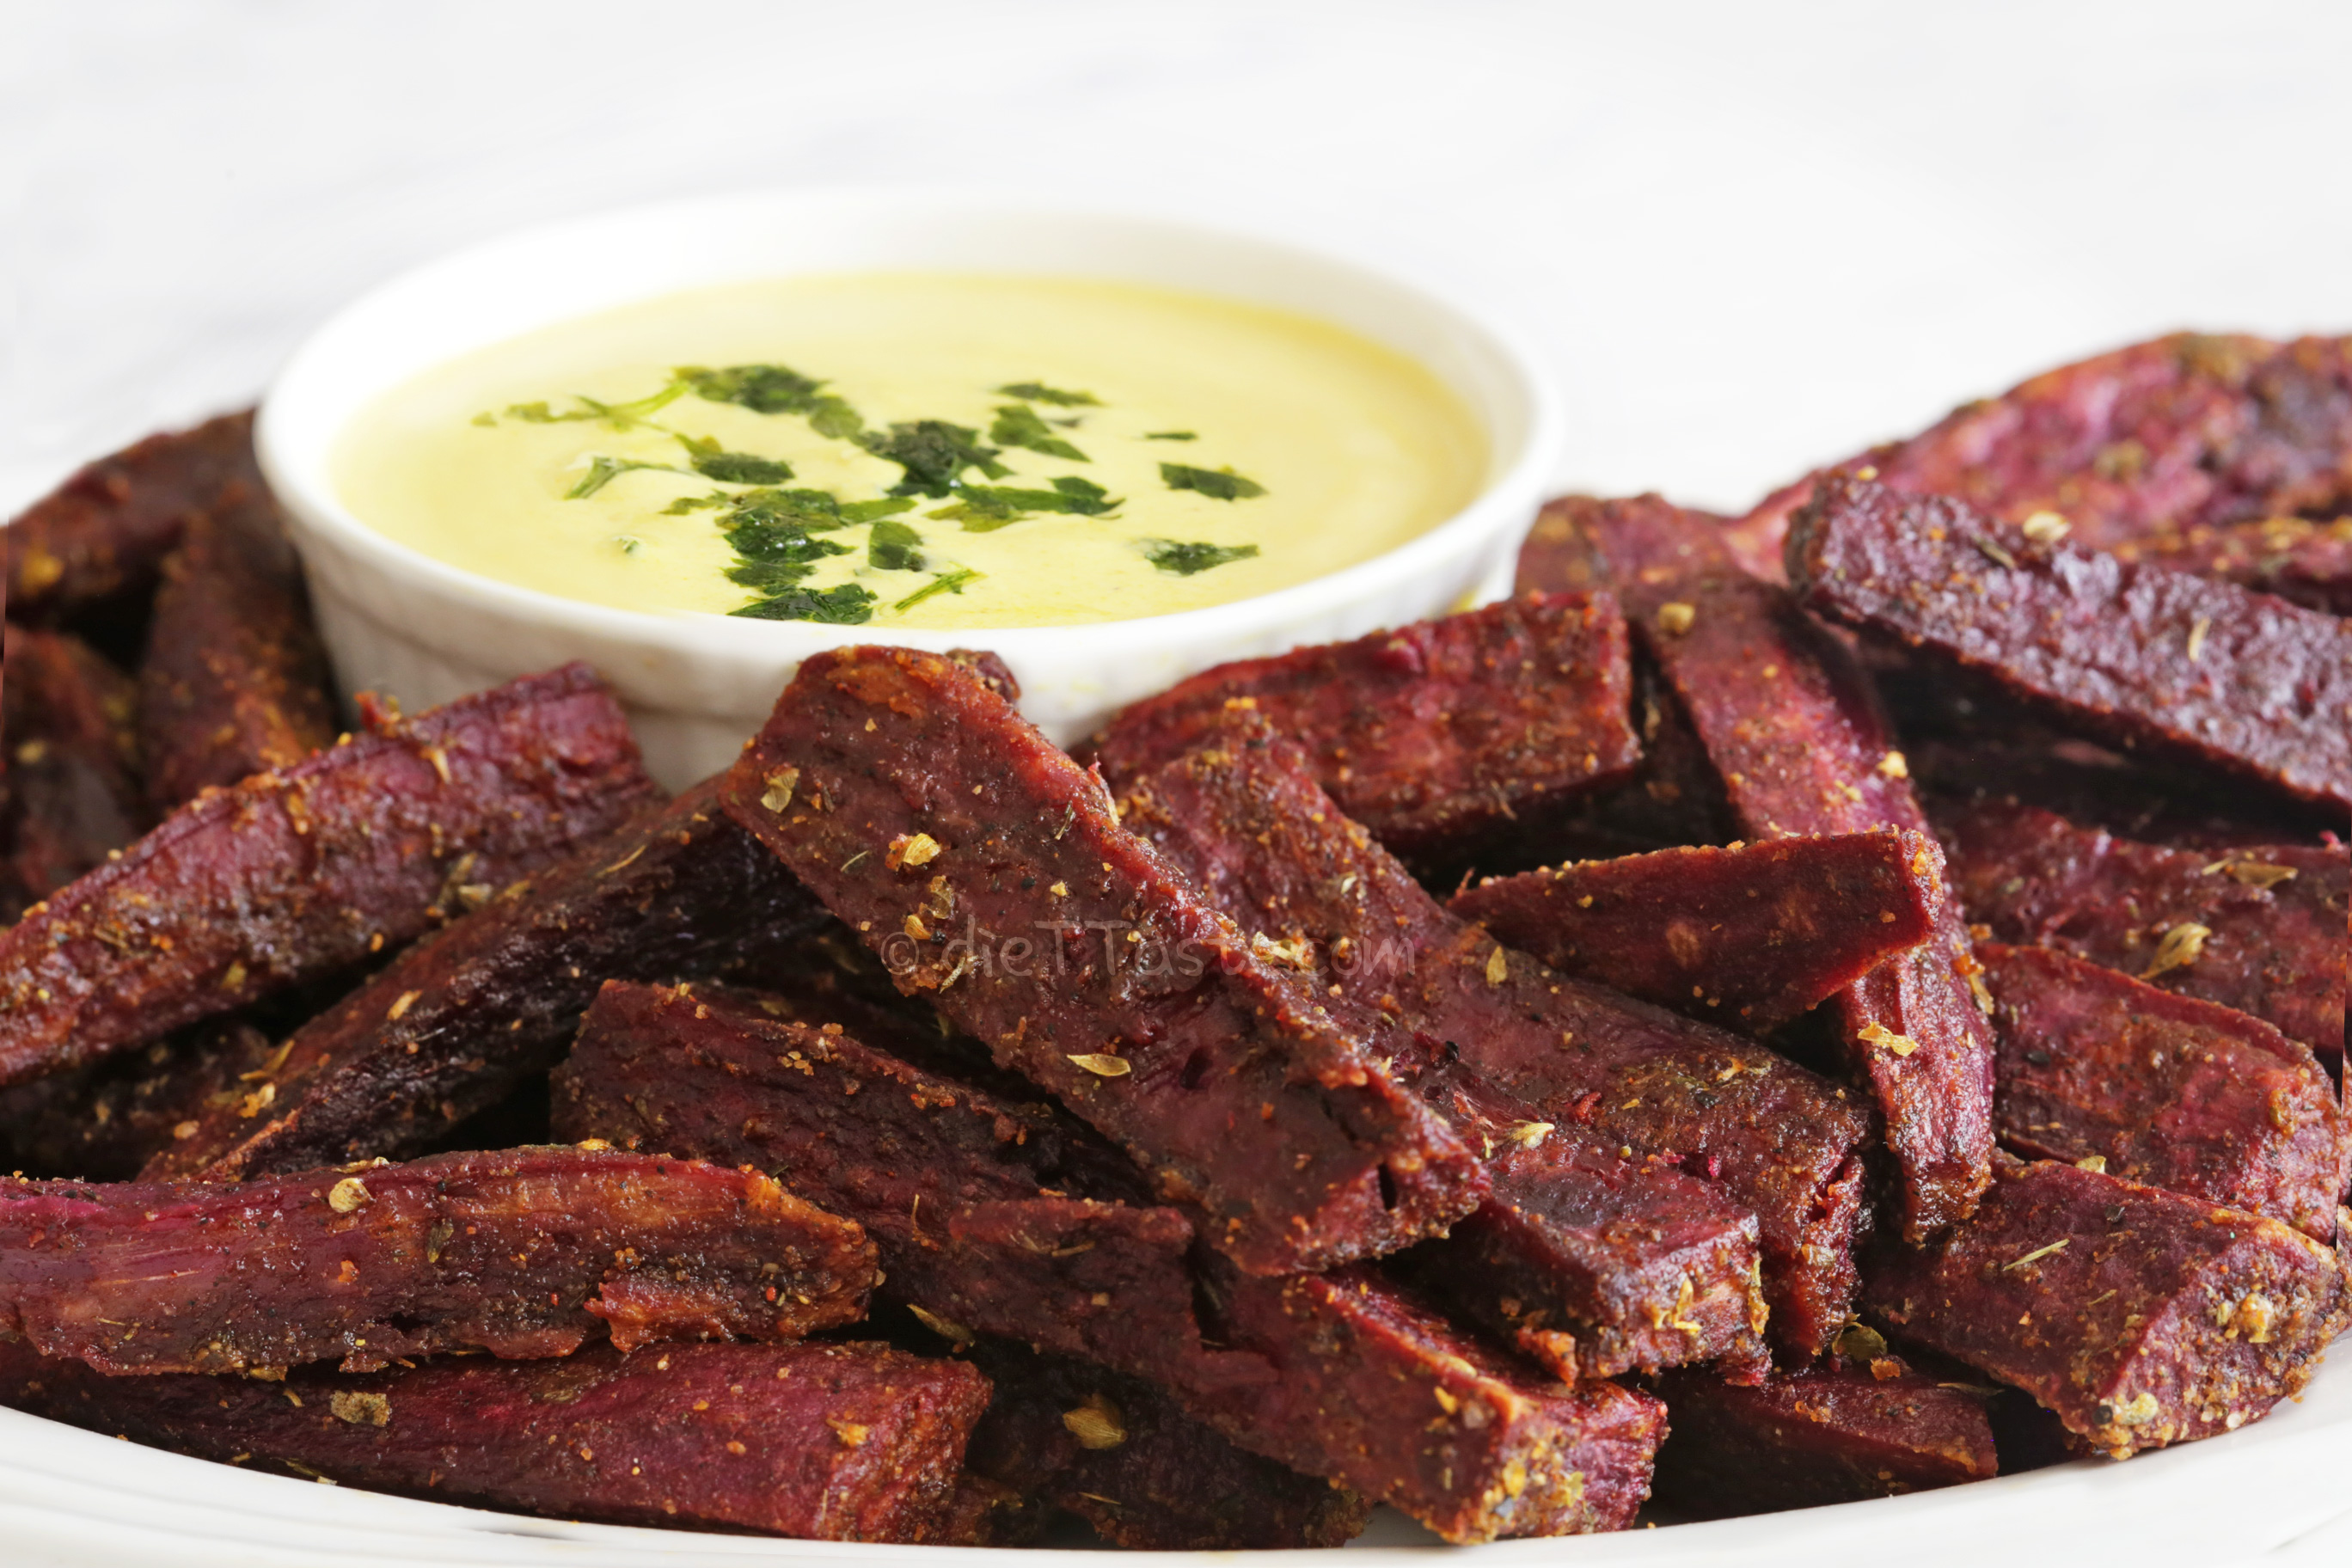 Spicy Purple Sweet Potato Fries - crispy oven baked fries, full of antioxidants and actually good for you!